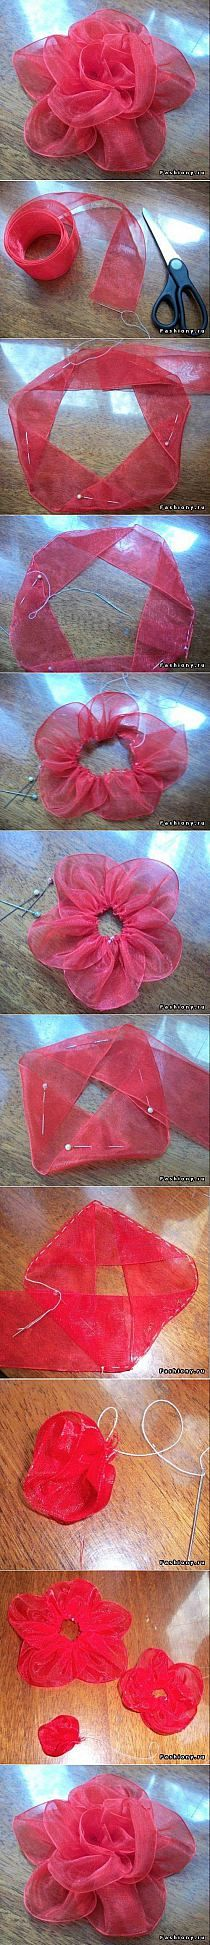 DIY Ribbon Tape Flower Tutorial in pictures Ribbon Art, Diy Ribbon, Fabric Ribbon, Ribbon Crafts, Flower Crafts, Fabric Crafts, Sewing Crafts, Ribbon Rose, Organza Ribbon